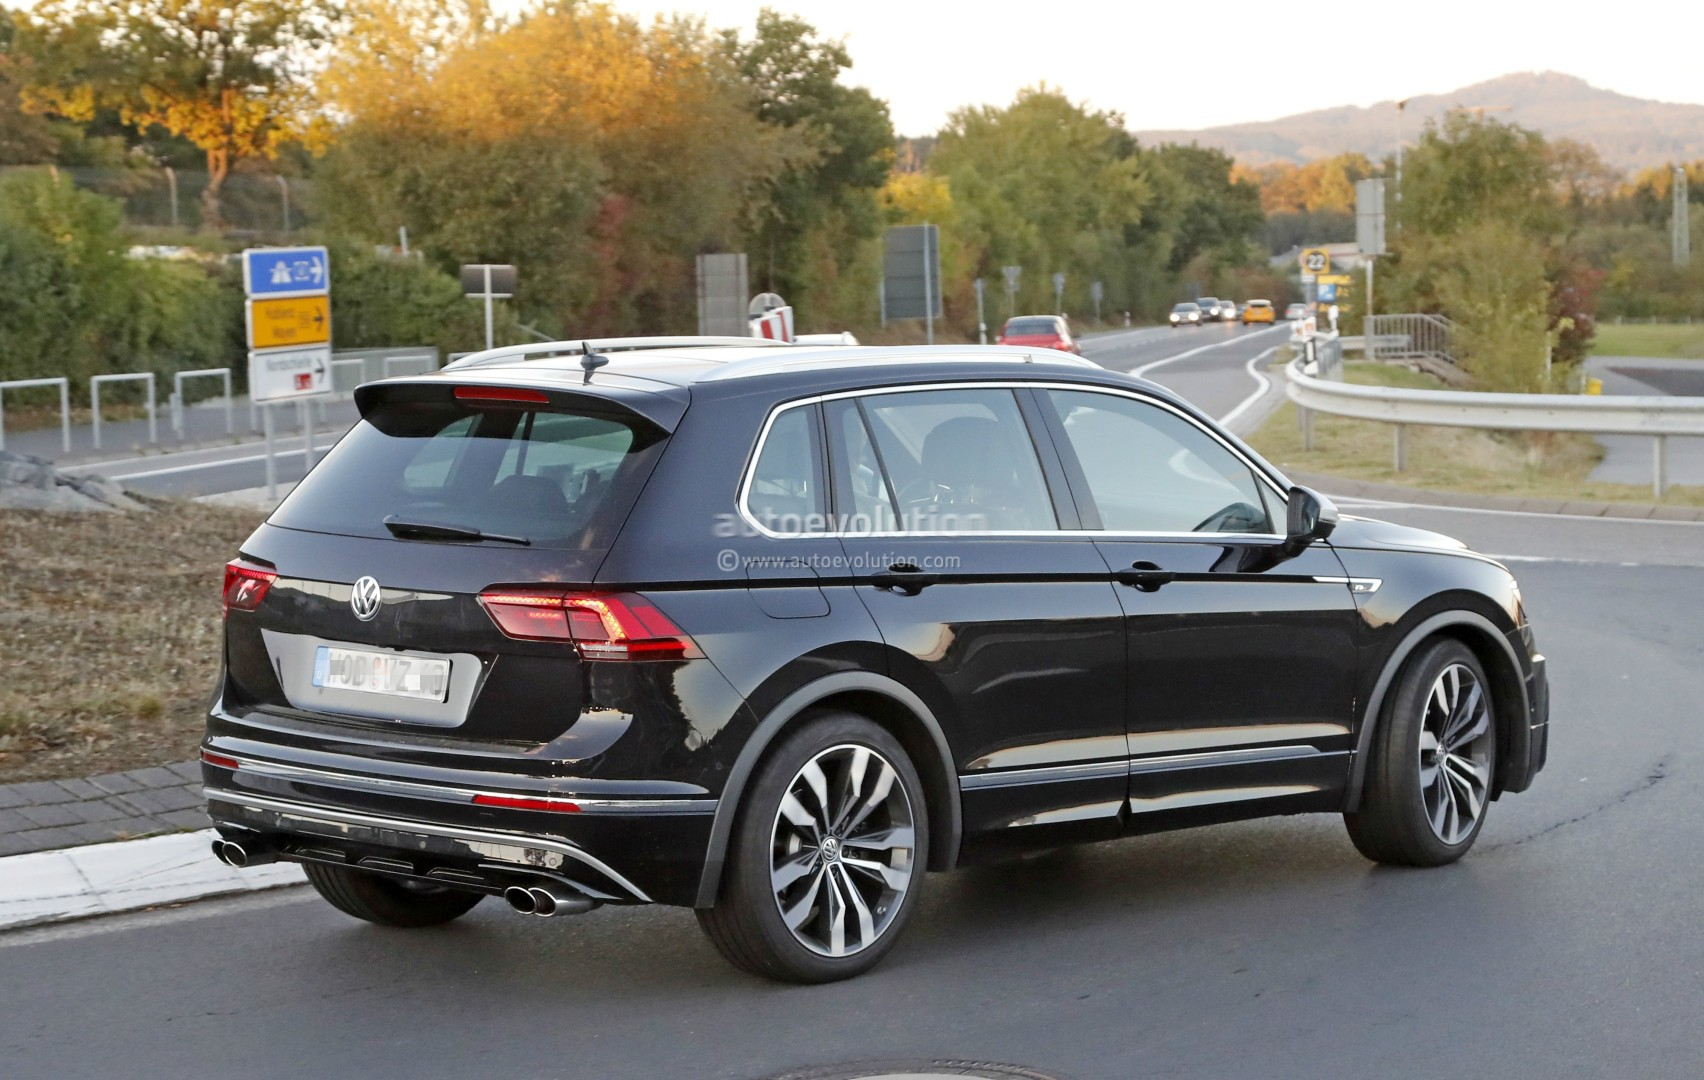 2018 volkswagen tiguan r spotted at nurburgring not trying to hide its 310 hp autoevolution. Black Bedroom Furniture Sets. Home Design Ideas